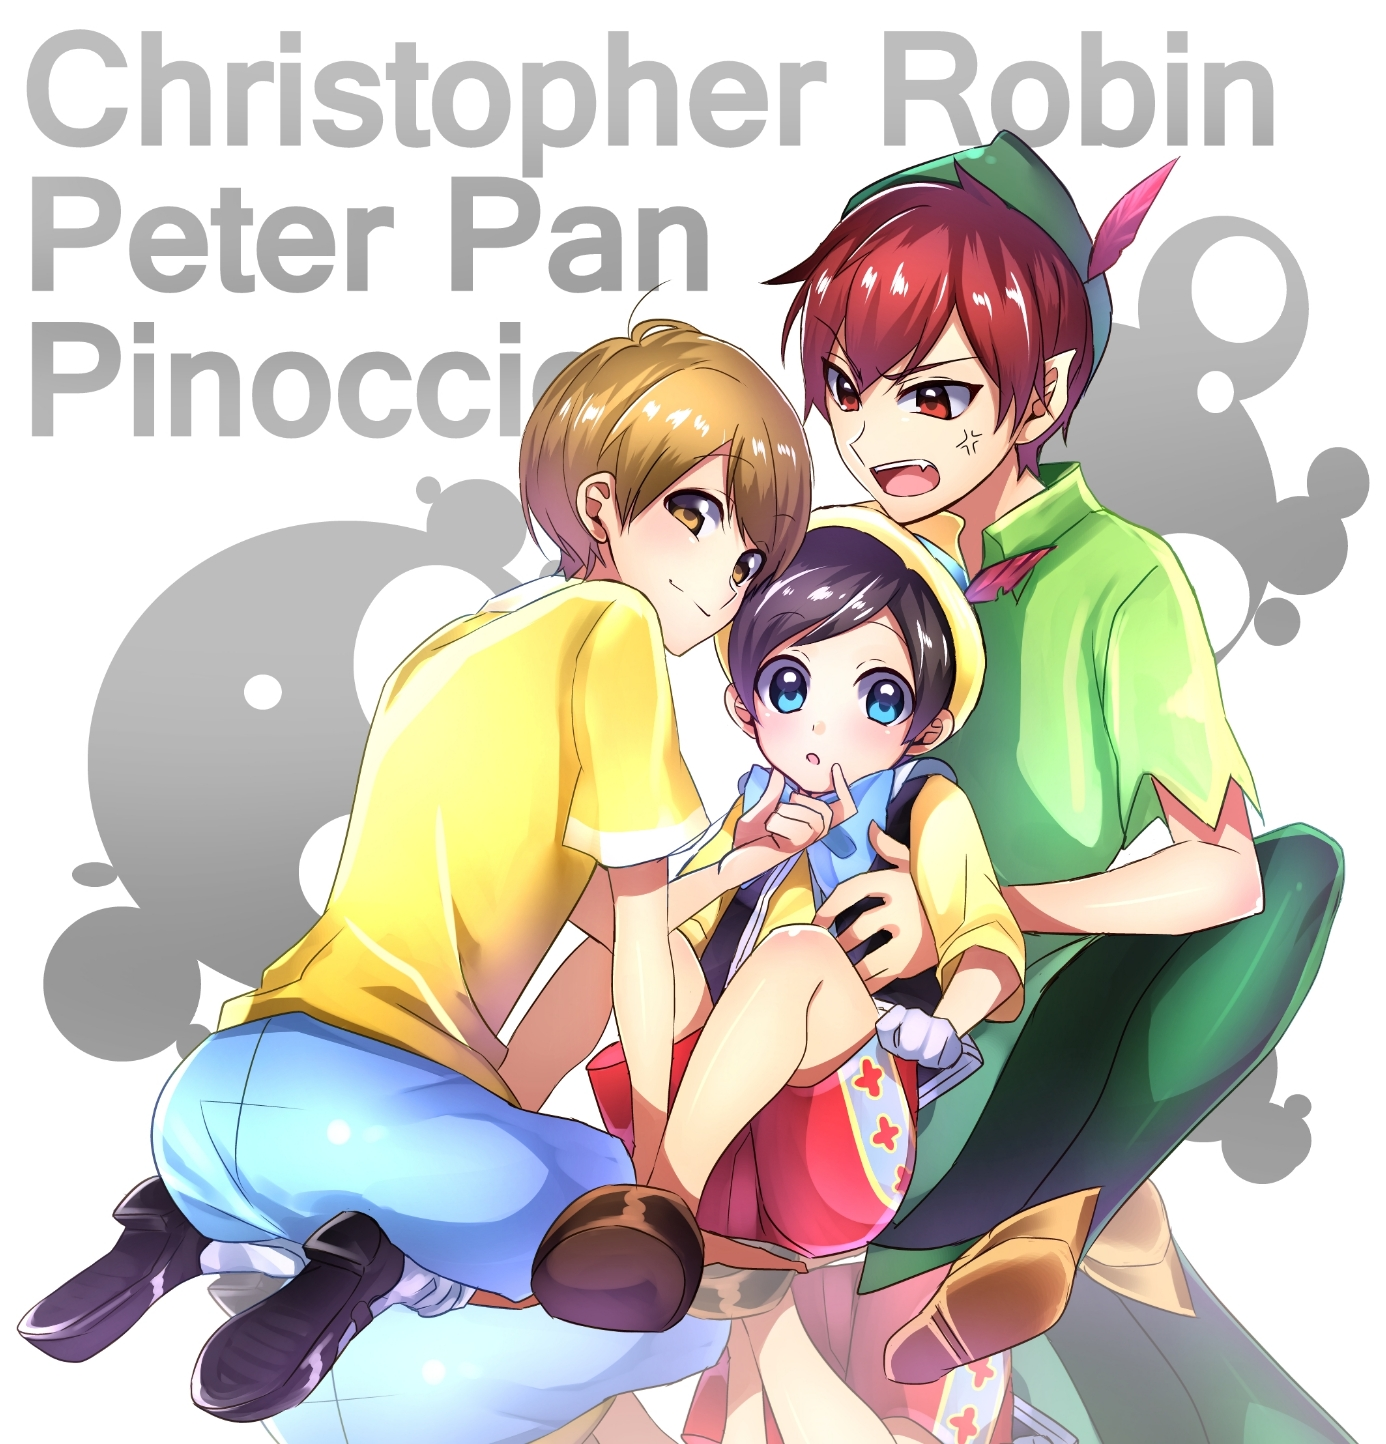 X And Y Anime Characters : Christopher robin winnie the pooh zerochan anime image